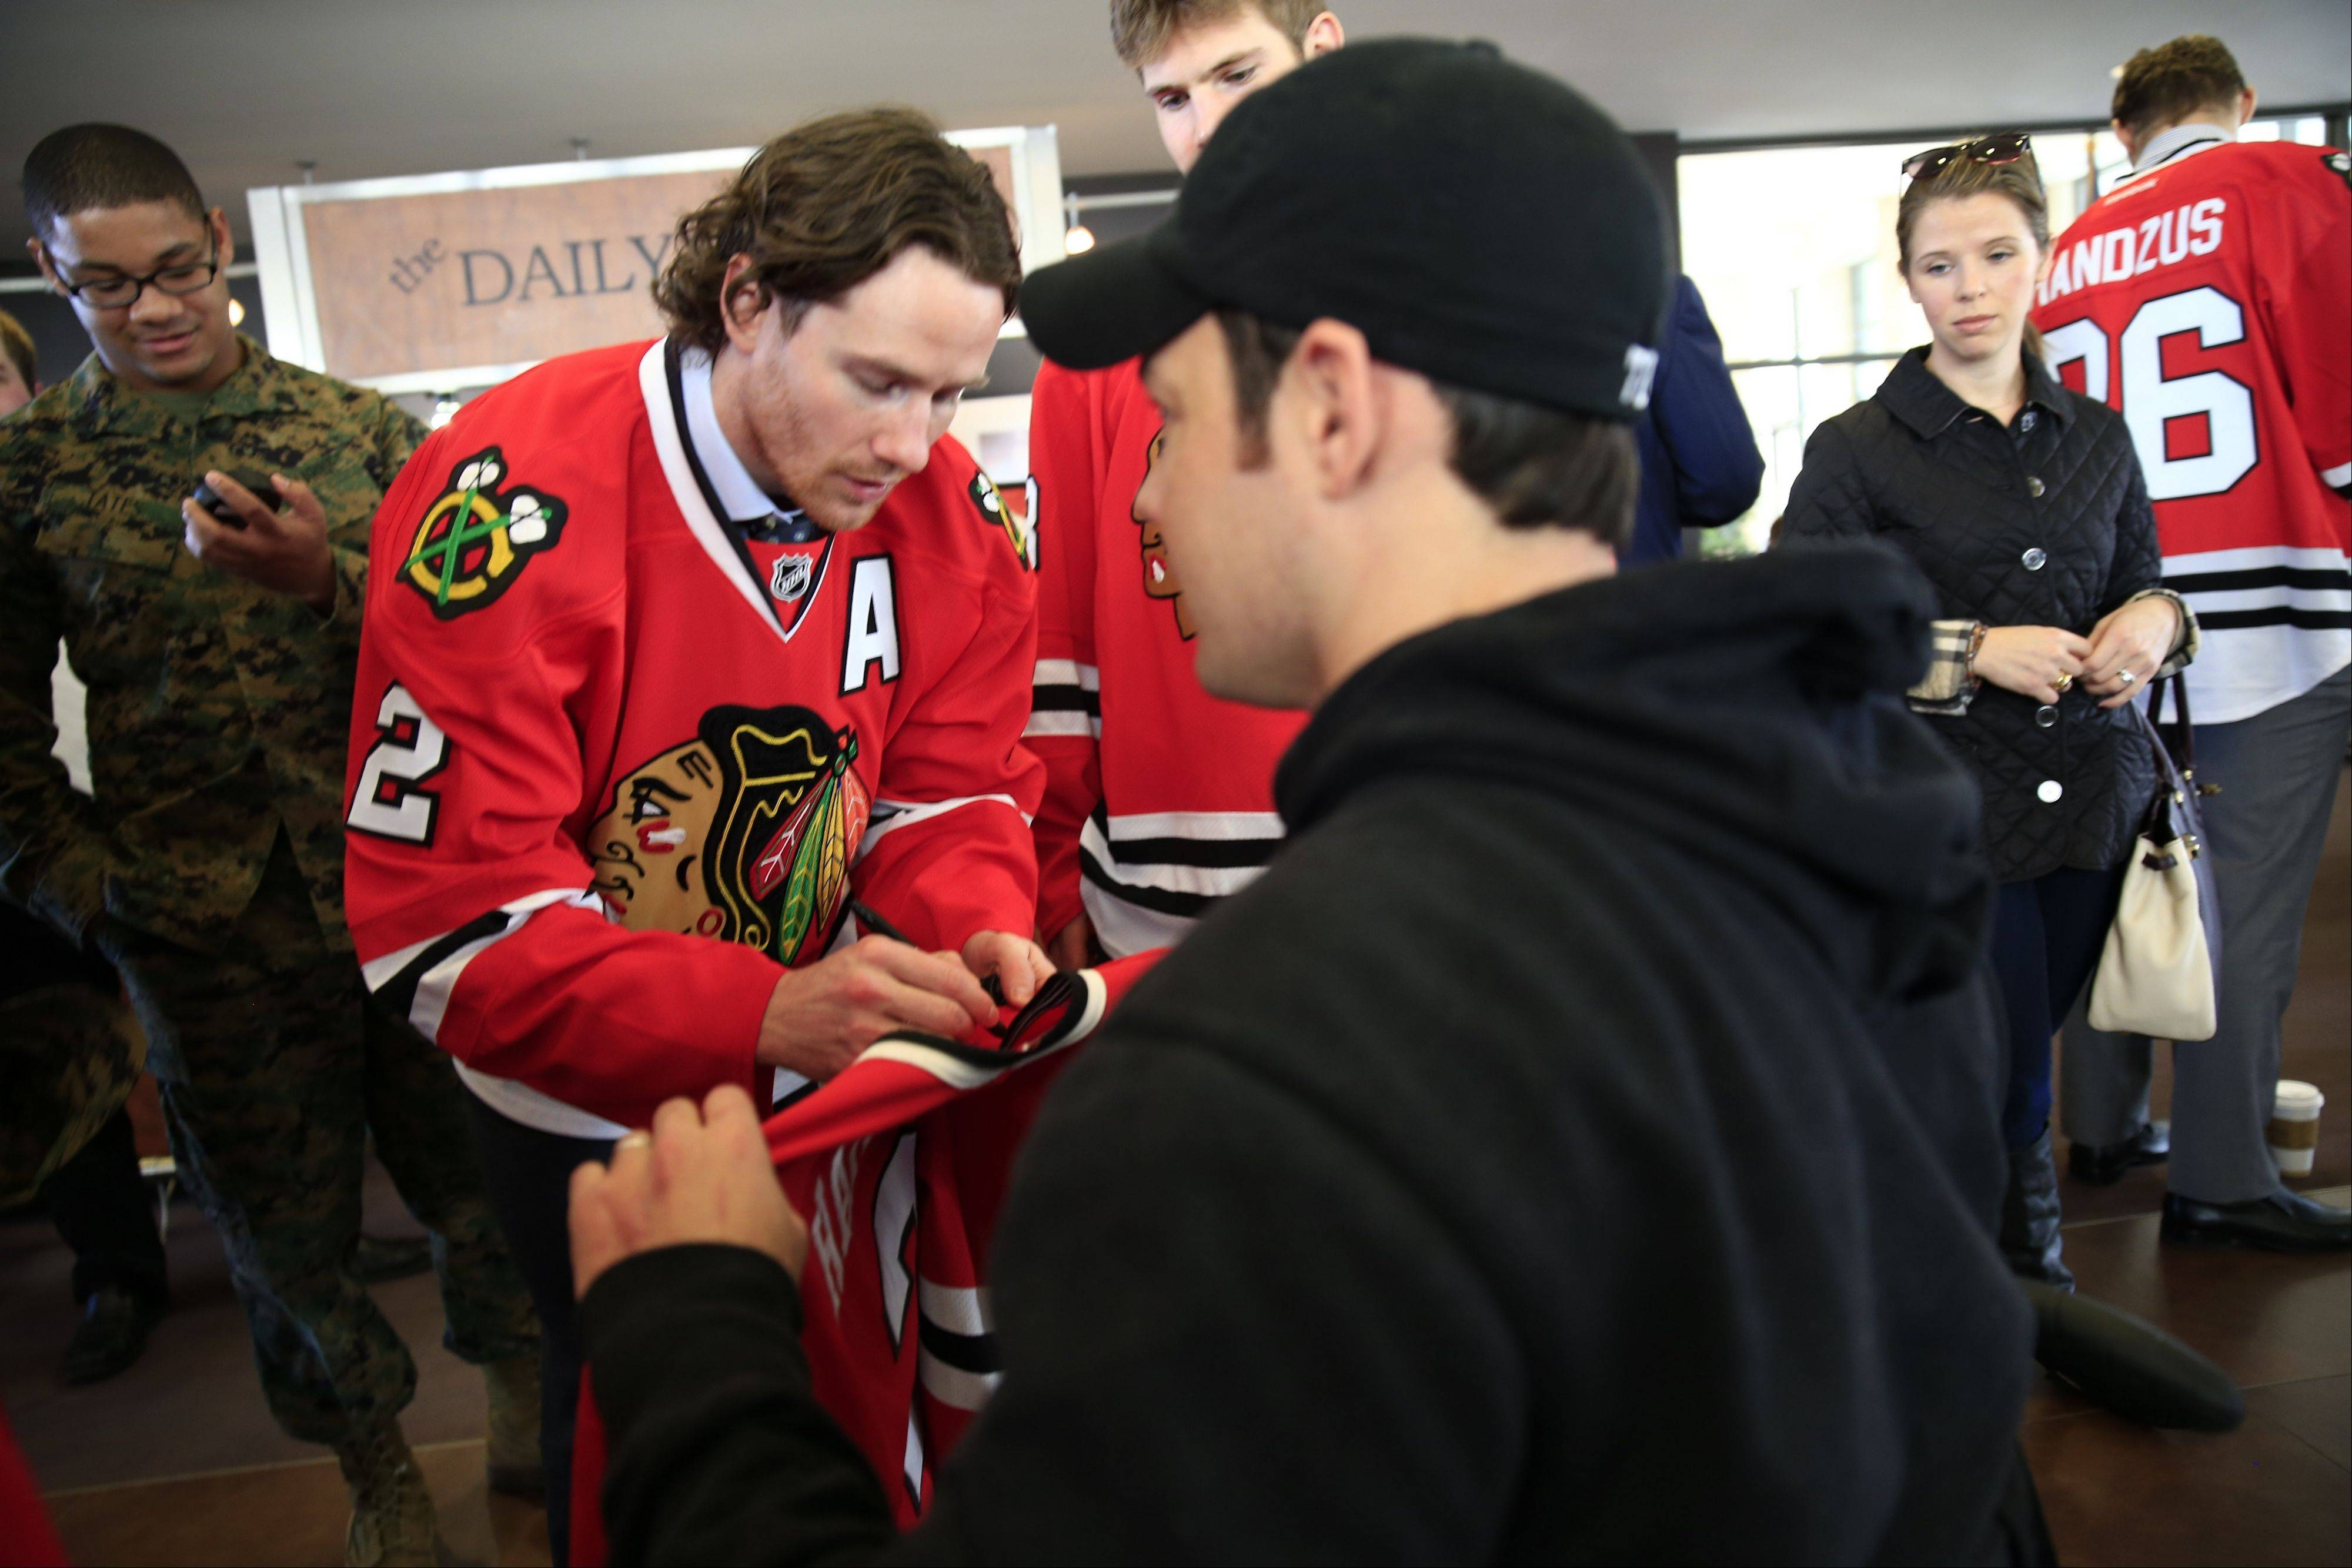 Images: Blackhawks at Walter Reed Medical Center